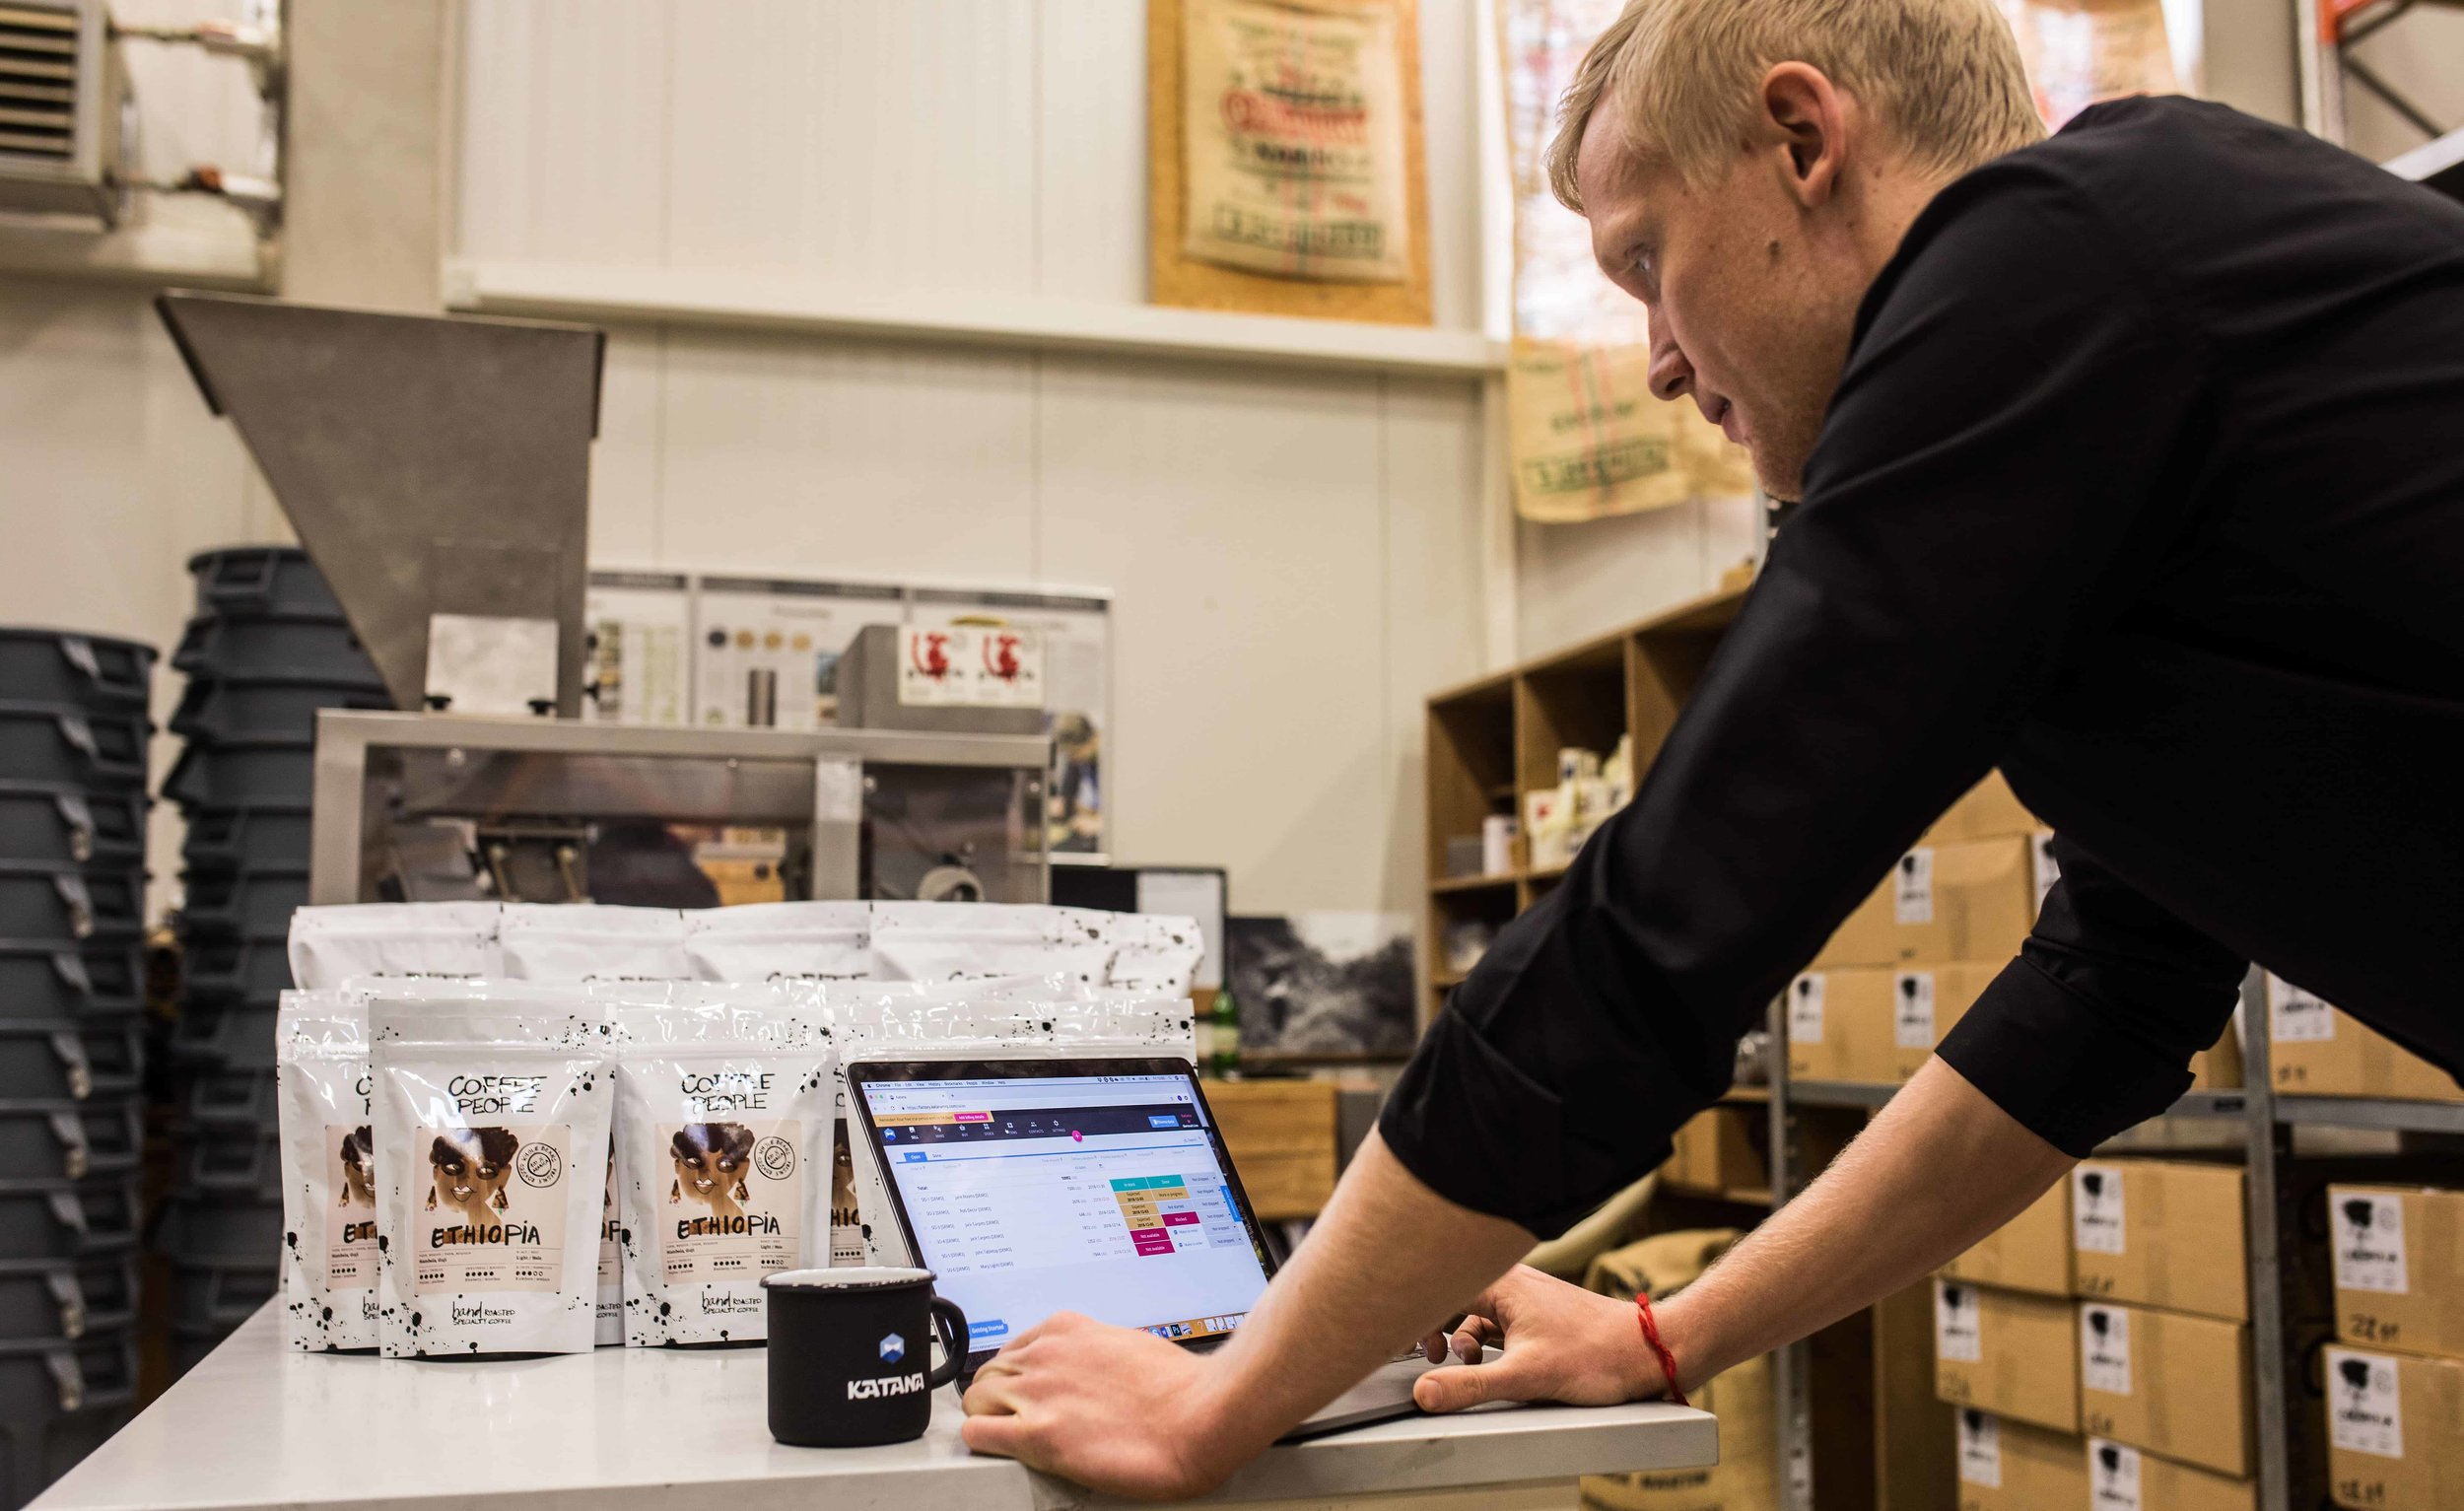 Some behind the scene challenges faced by manufacturing industries is actually finding the right tool to support their manufacturing operations. As most inventory management tools have been built in mind for drop shippers.